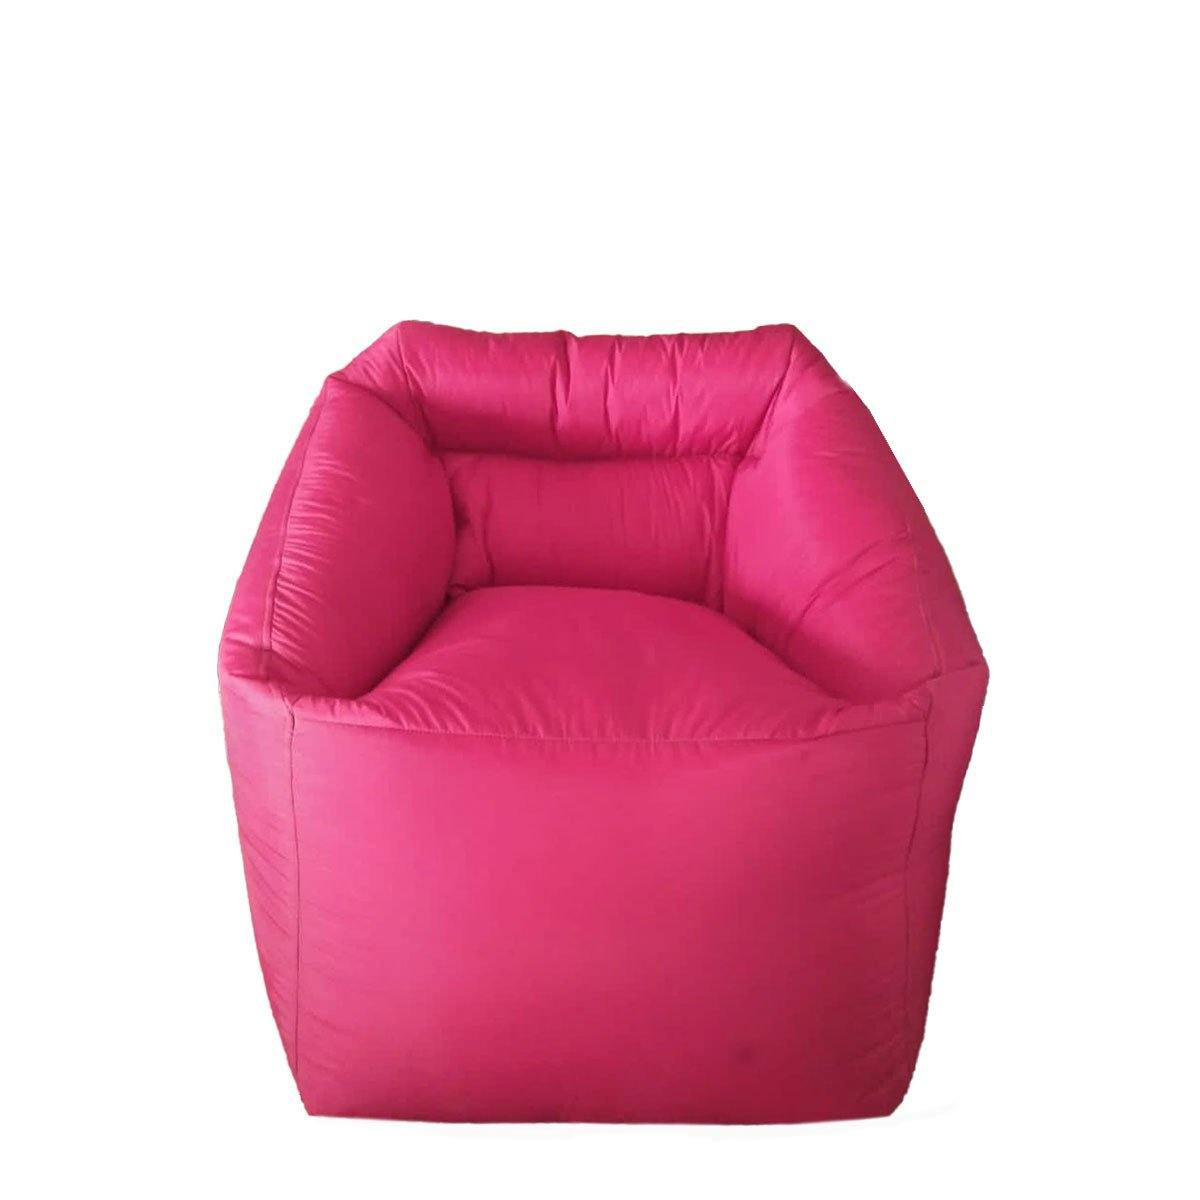 The Sofa bean bag